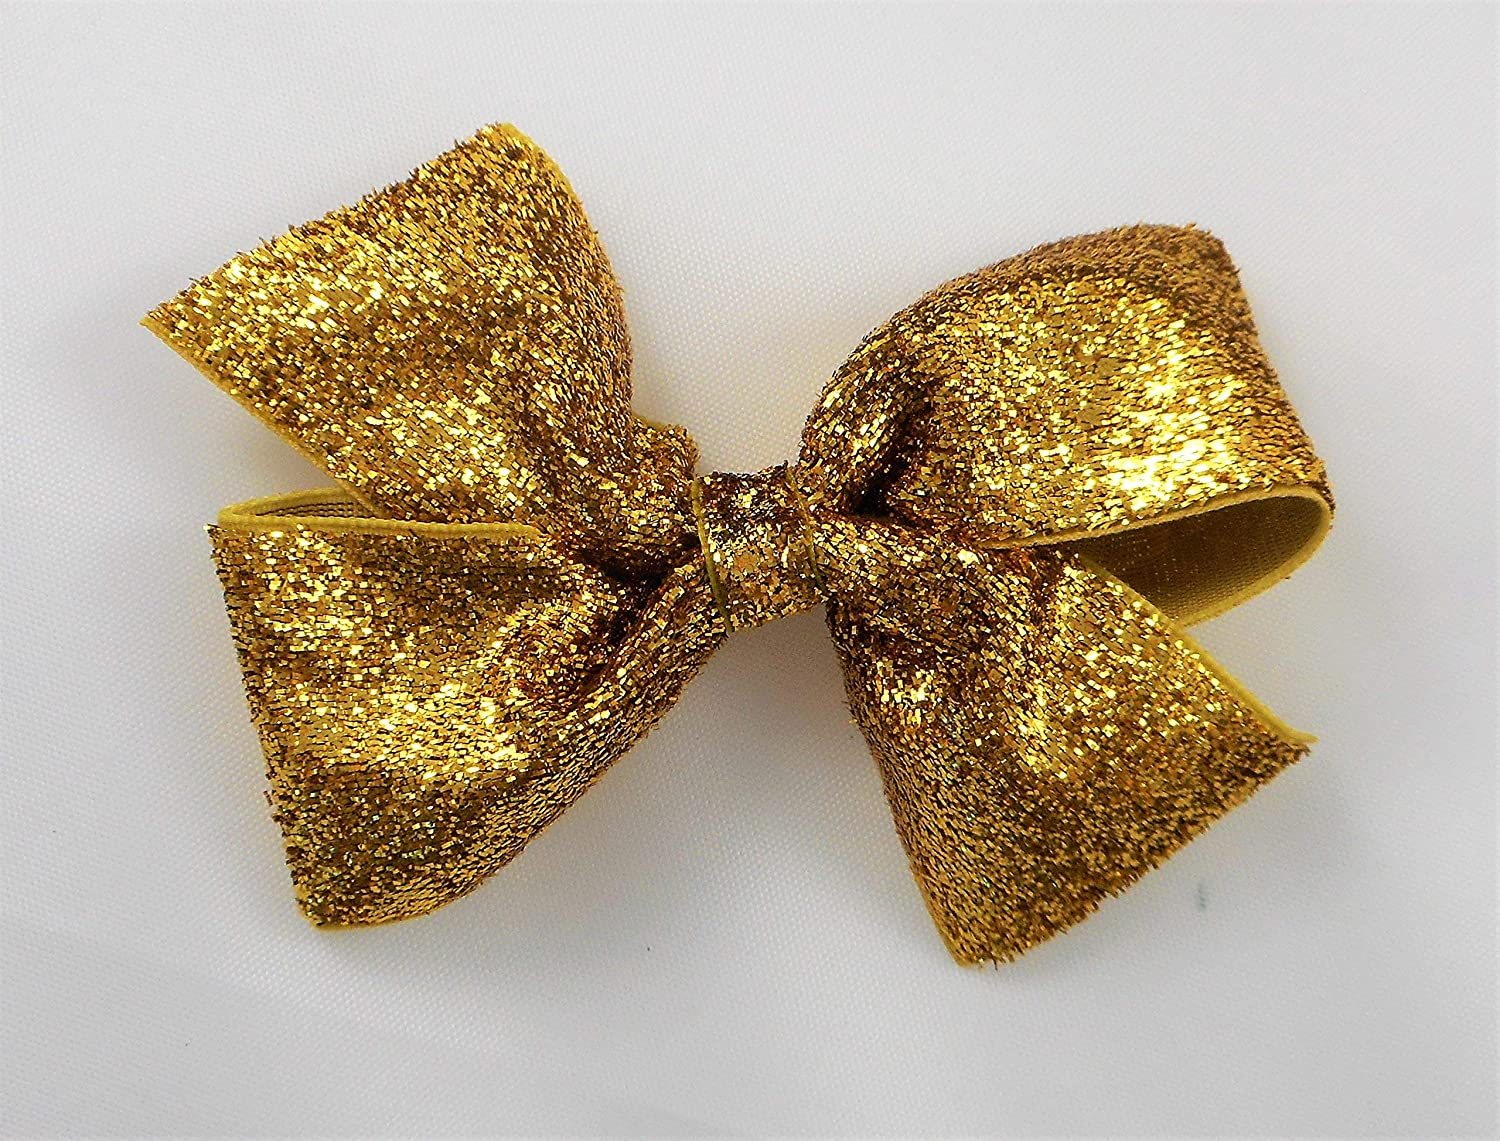 Easter hair bow set of 6 hair bow clips wholesale bow lot gold and hot pink hair bow gold striped yellow hair bow gold and blue hair bow